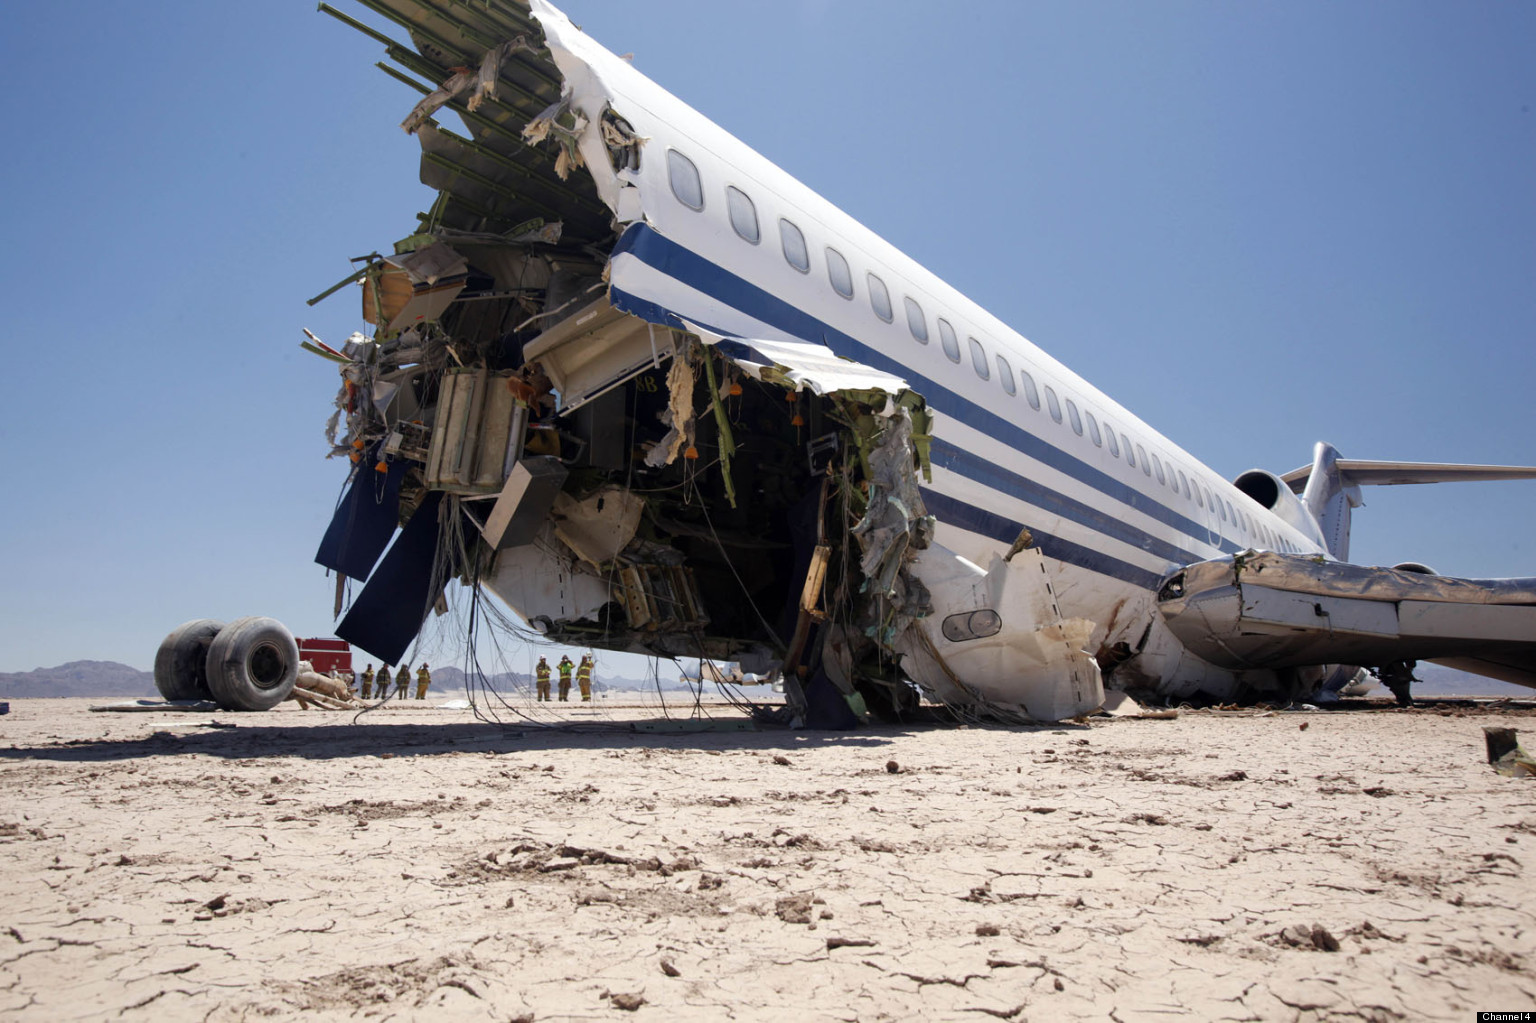 Channel 4's Plane Crash Documentary 'Is About Science, Not ...